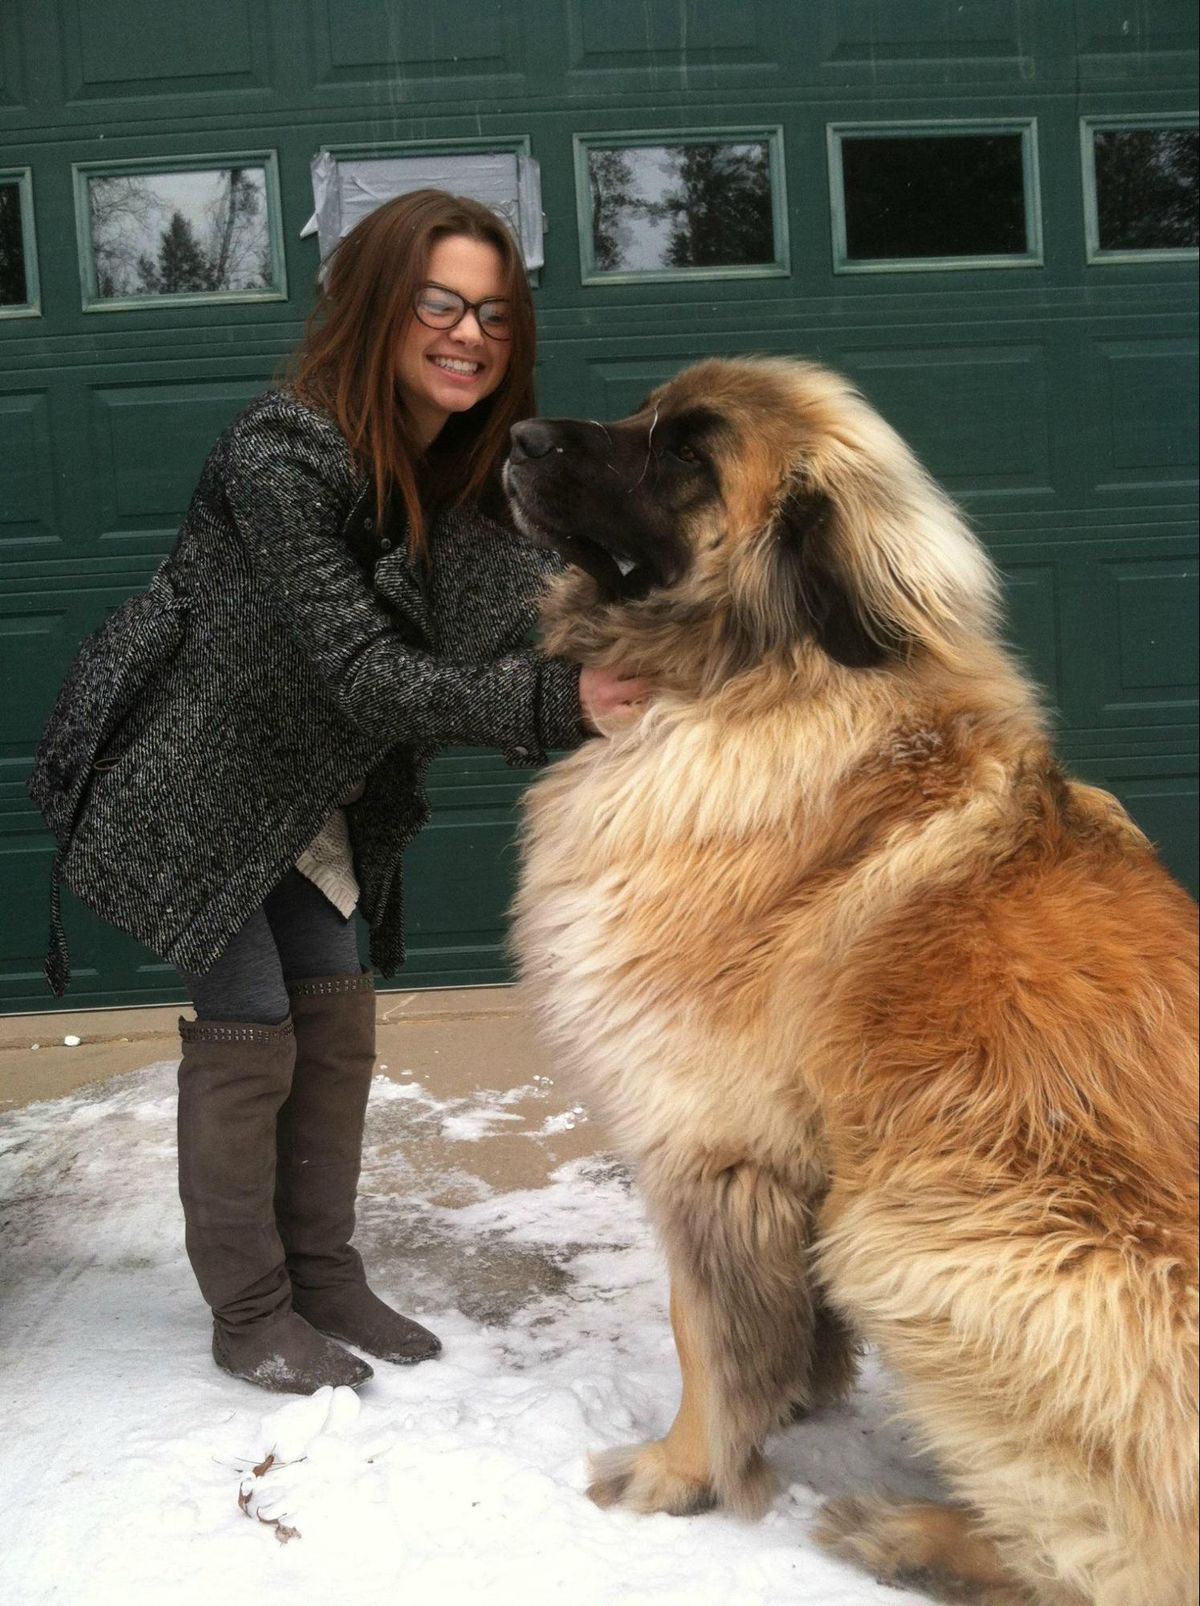 Leonberger A Cross Between Newfoundland St Bernard And Pyrenean Mountain Dog Looking A Bit Like Lions They Reach 170 Lbs Cute Animals Puppies Animals